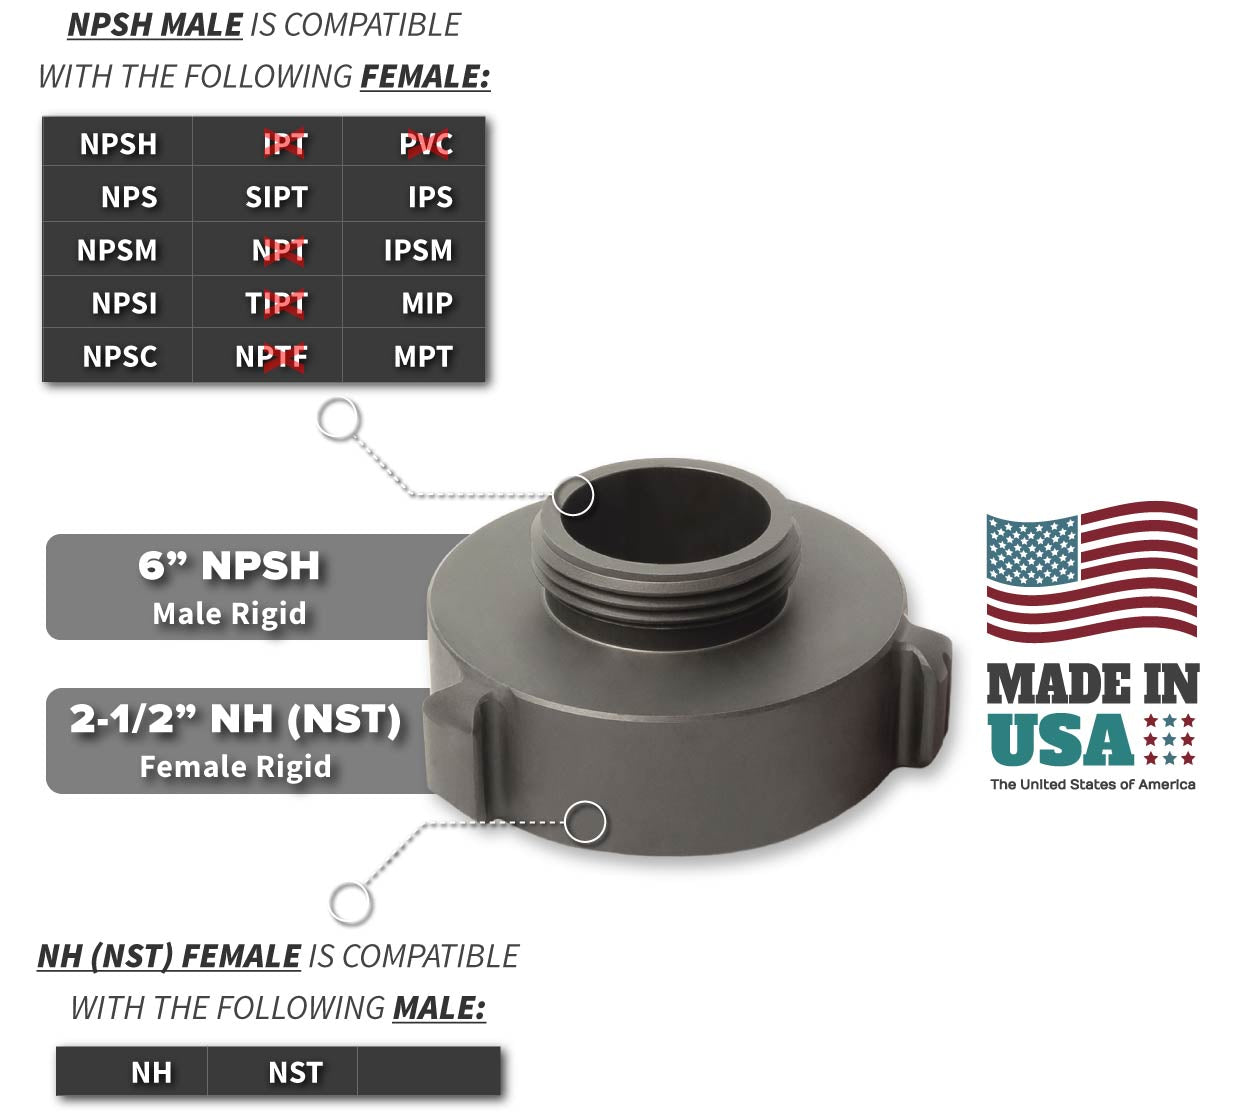 2.5 Inch NH-NST Female x 6 Inch NPSH Male Compatibility Thread Chart